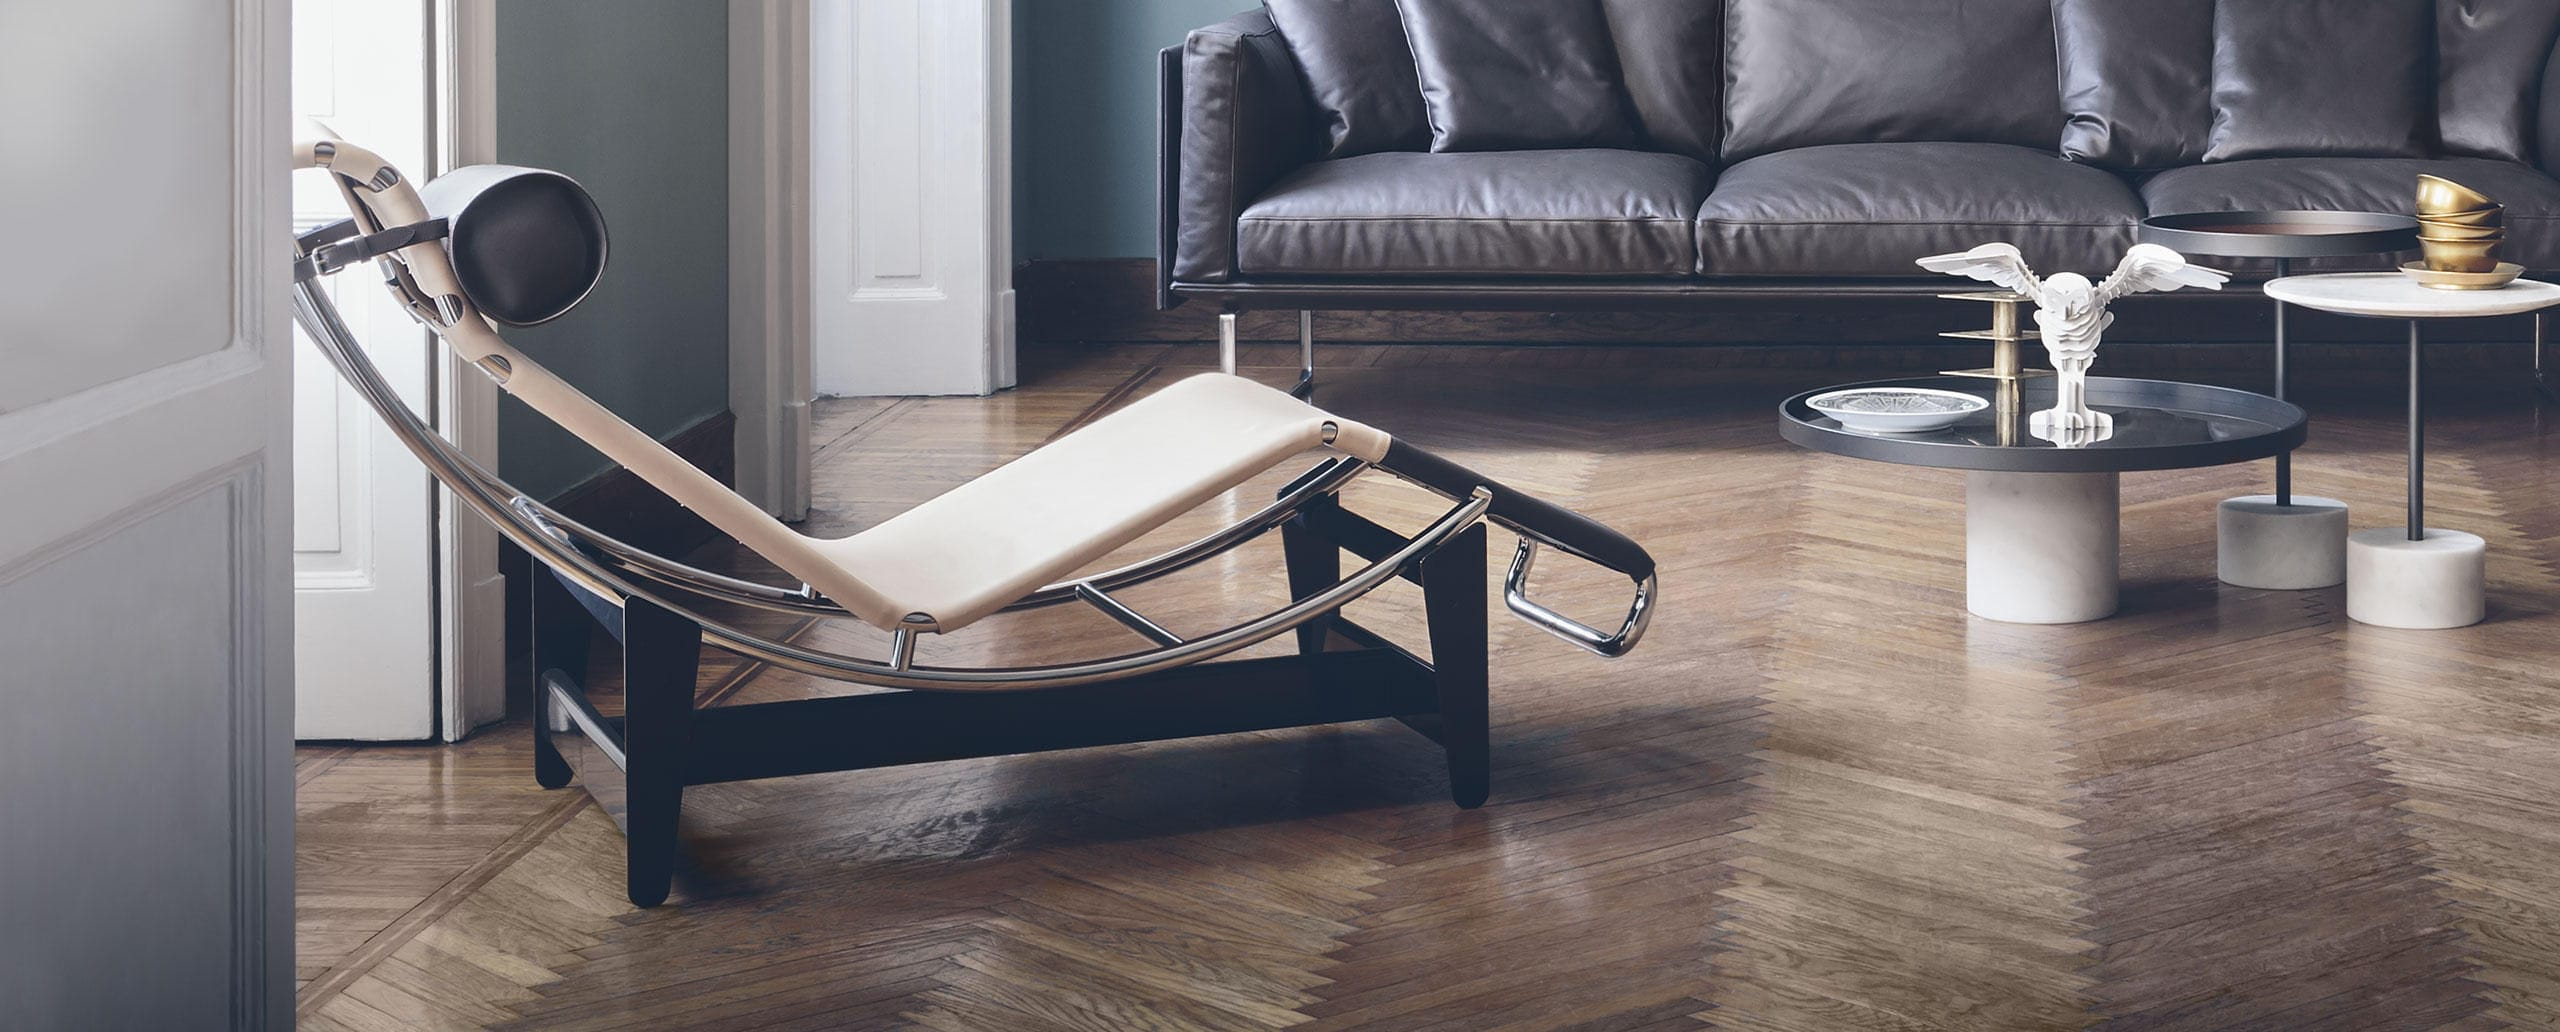 contemporary chaise longue leather steel by le corbusier